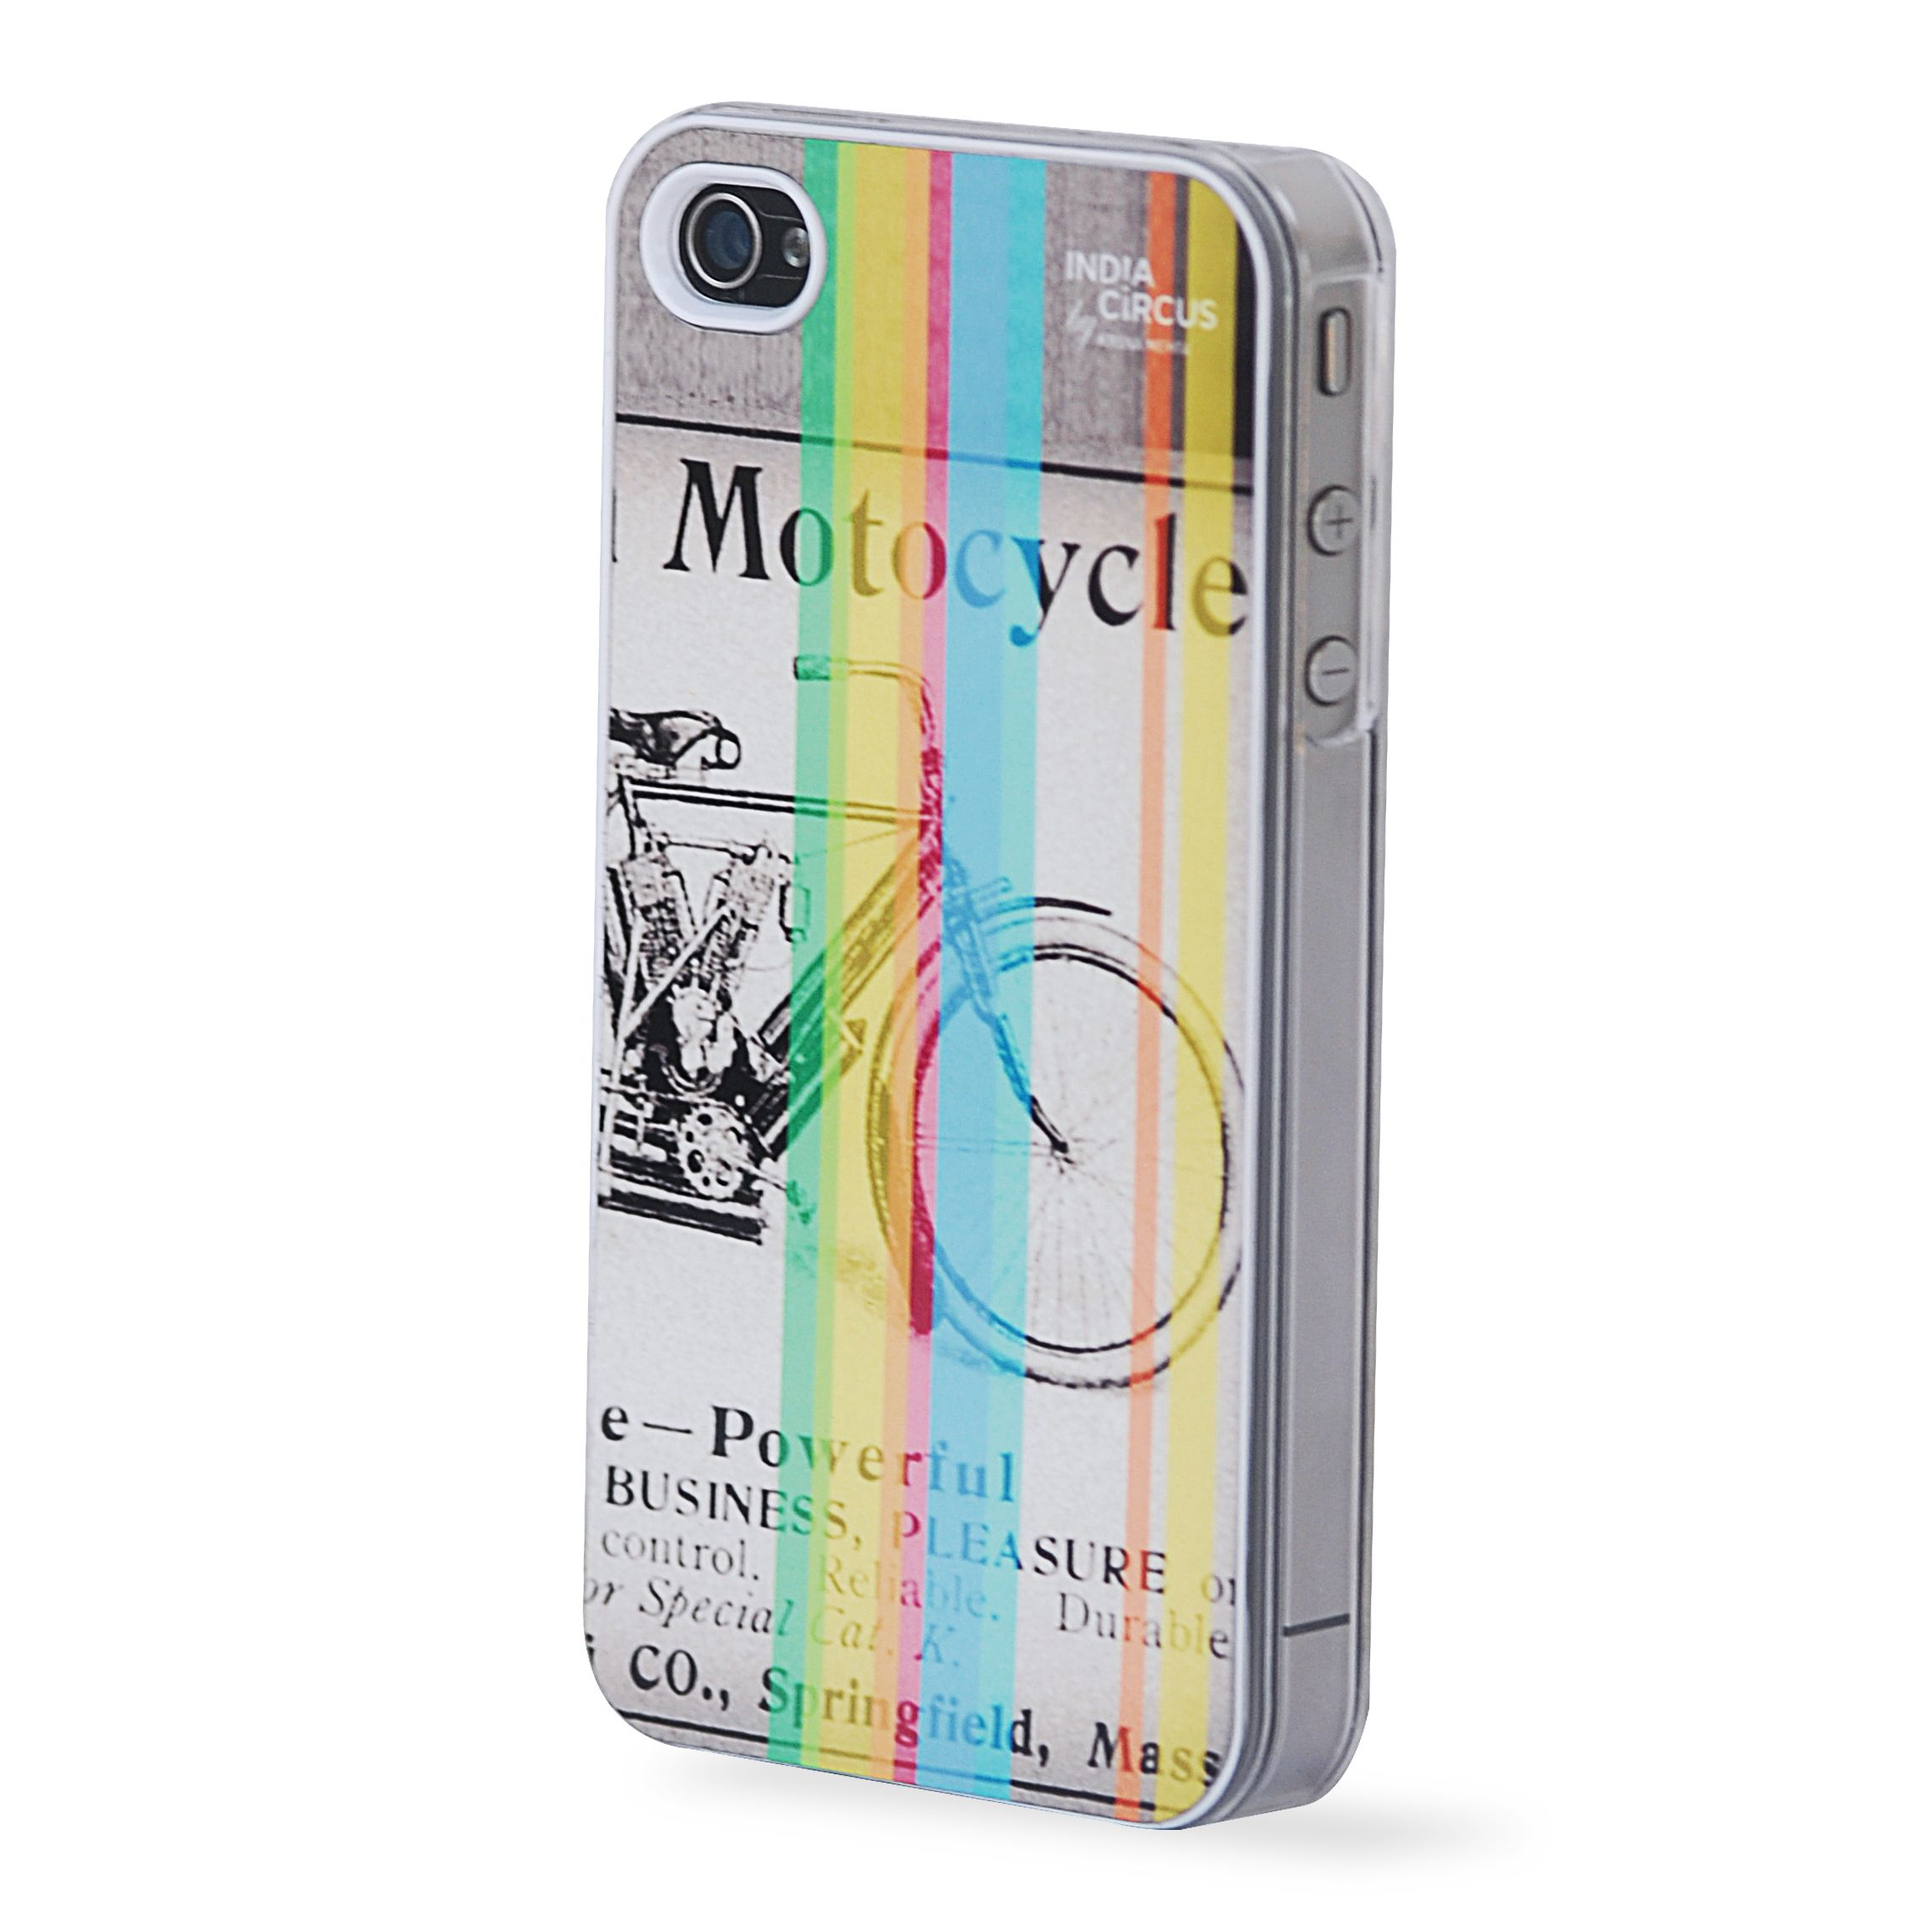 Motorcycle Magic Mobile Case for iPhone 5/5s